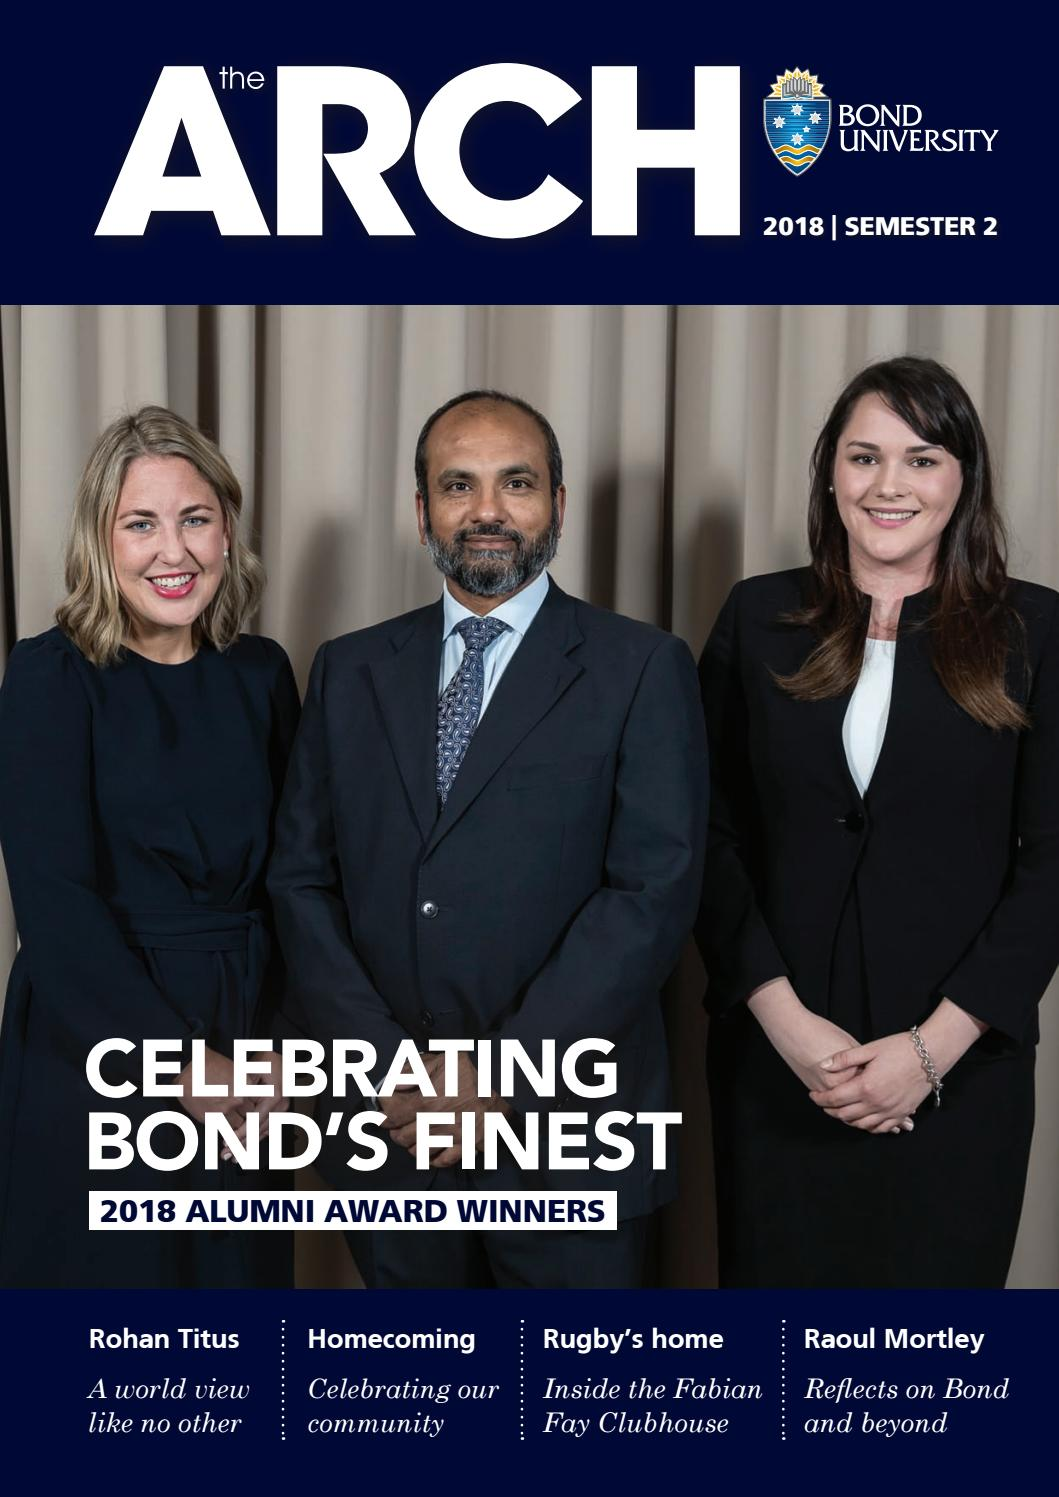 The ARCH Magazine | Issue 22 | 2018 Semester 2 by Bond University - issuu